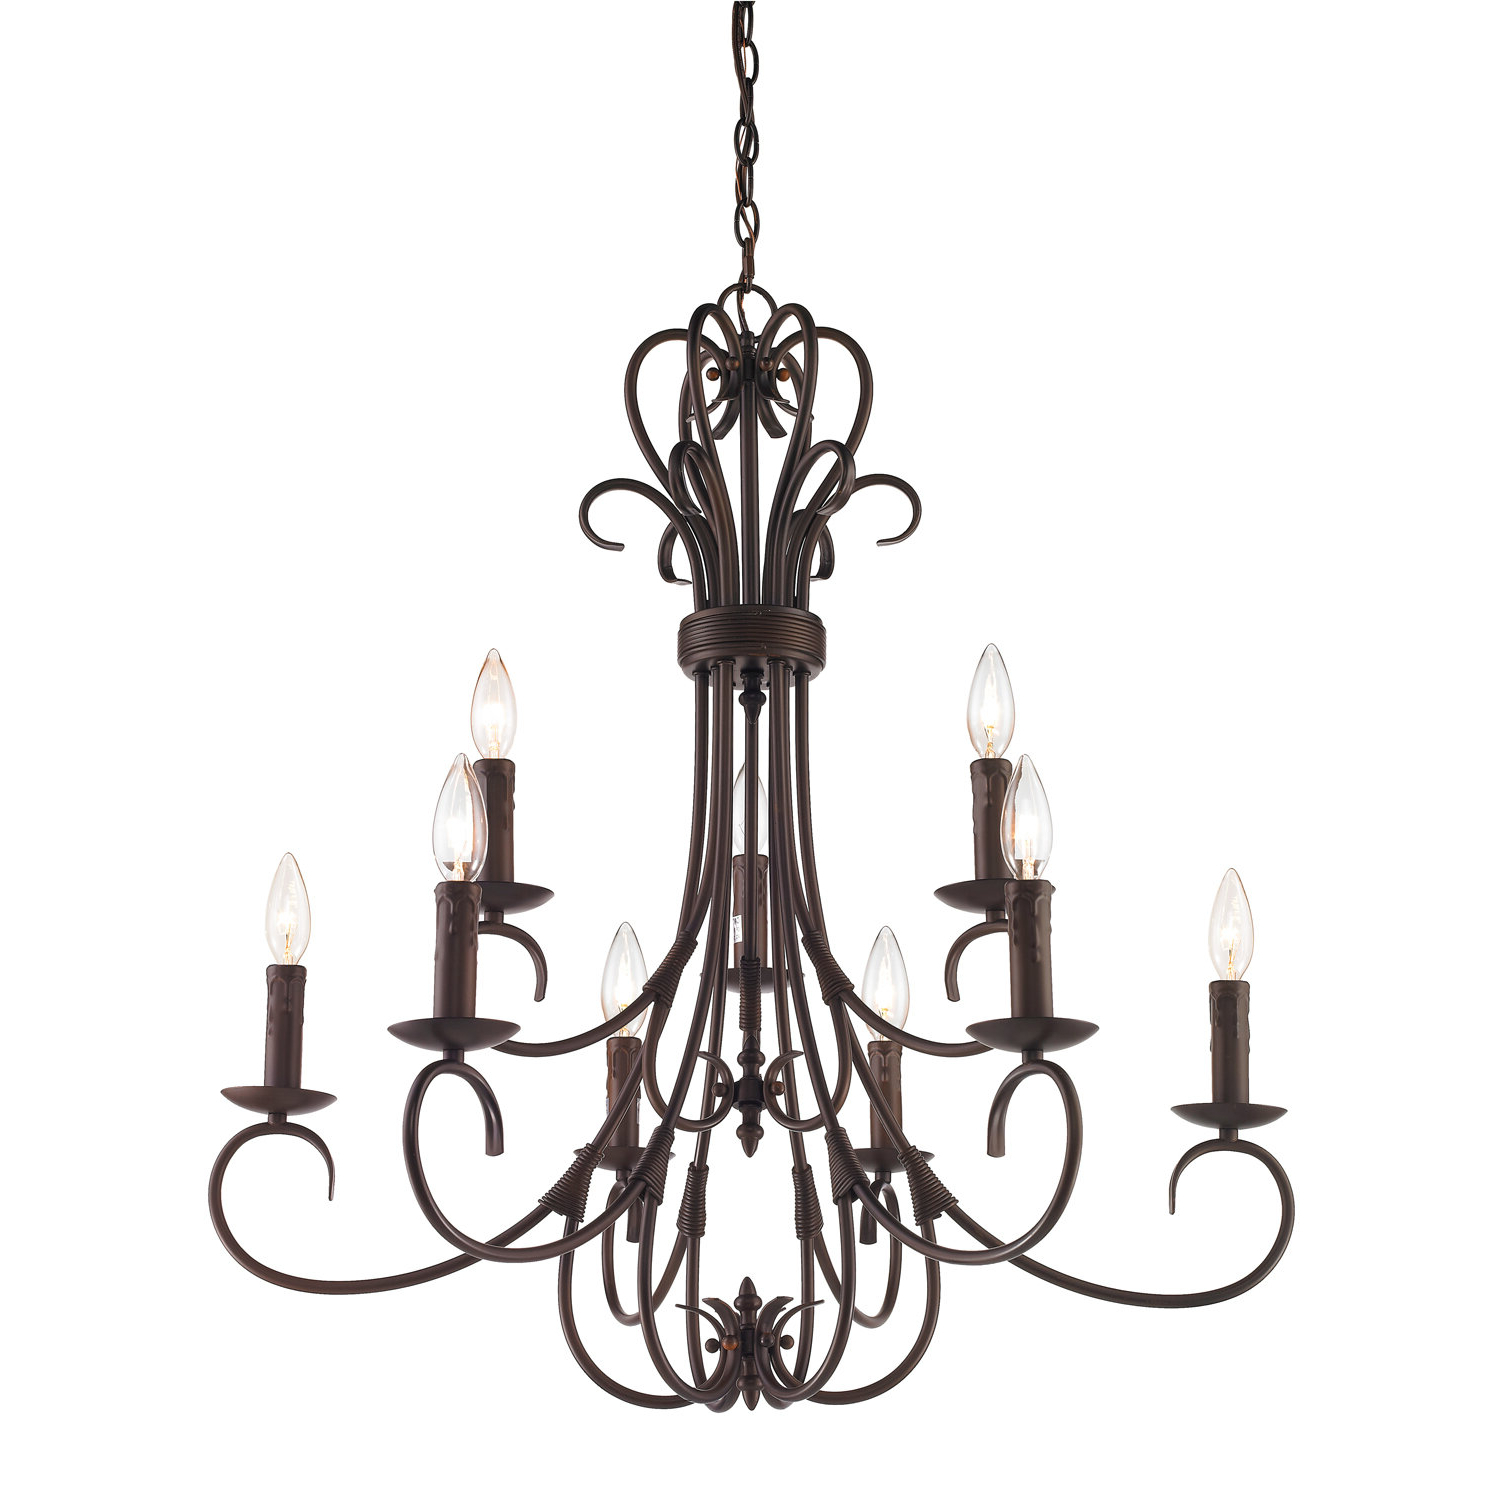 Wayfair For Well Liked Kenedy 9 Light Candle Style Chandeliers (View 10 of 25)